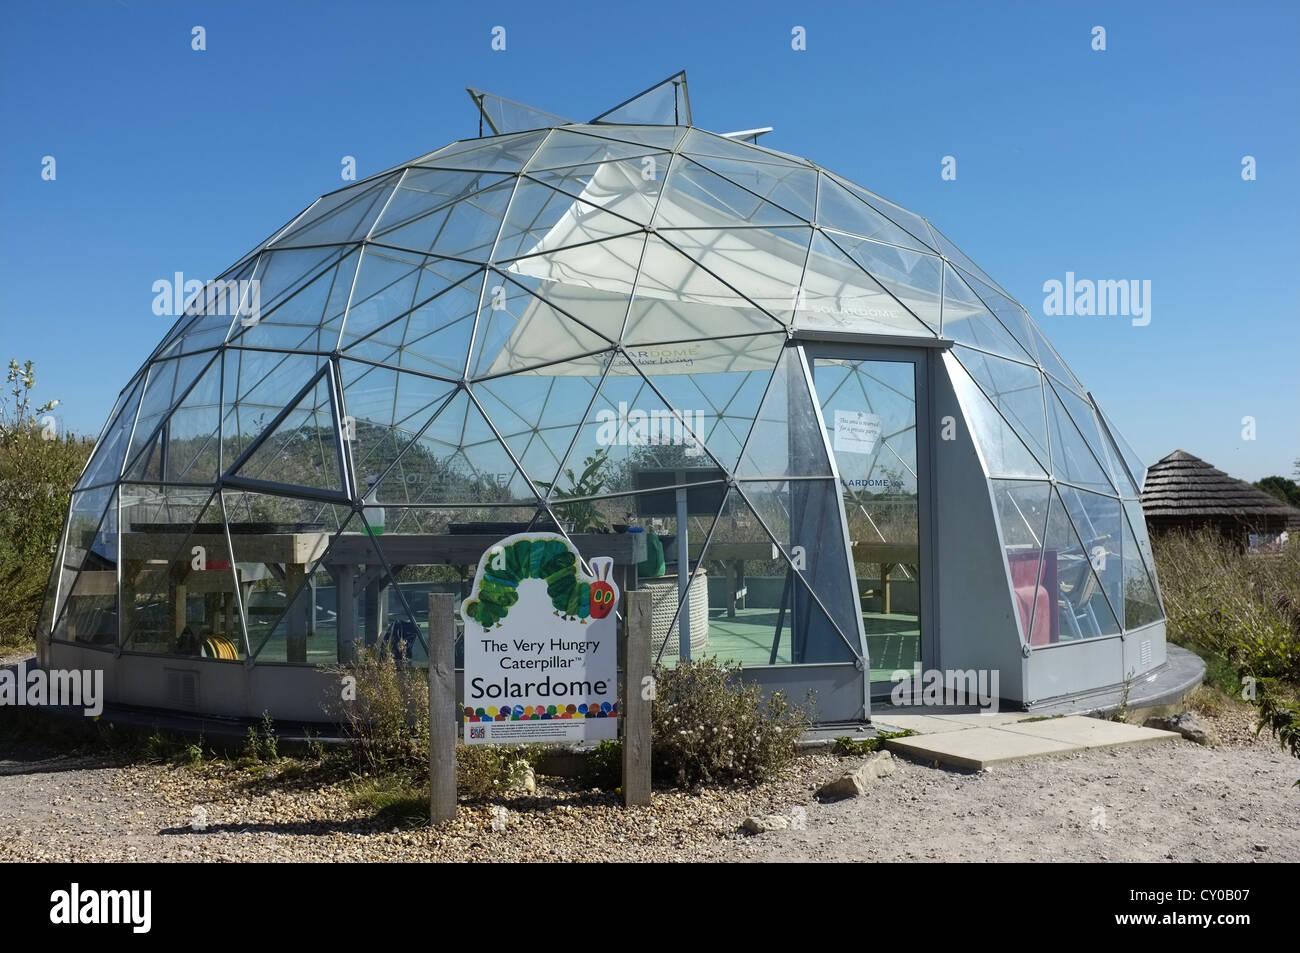 Dome shaped glass house at Butterfly World, St Albans, Hertfordshire - Stock Image